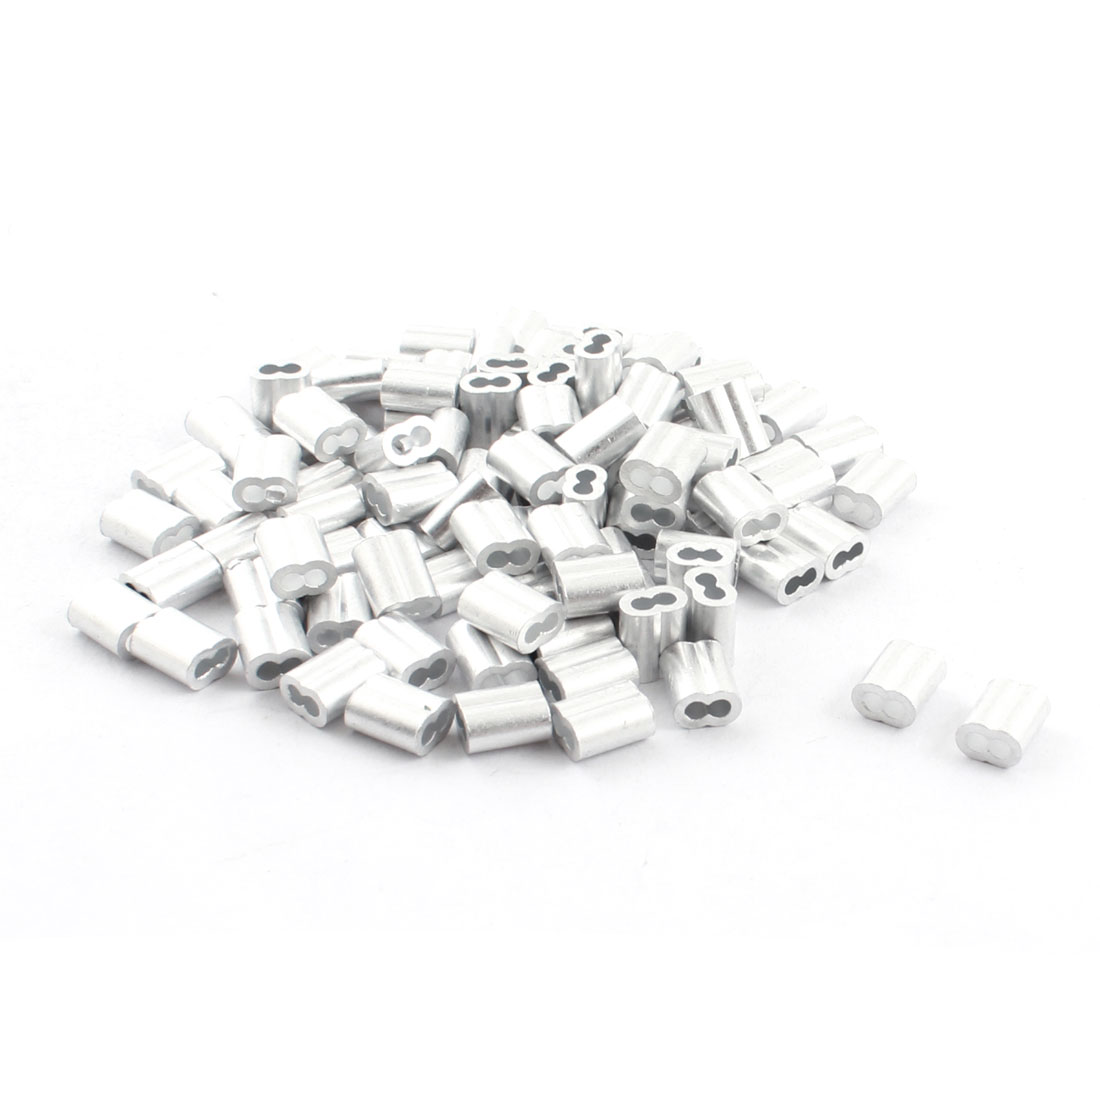 100Pcs 9mm Long Aluminum Hourglass Ferrules Sleeve Crimp for 2mm Wire Rope